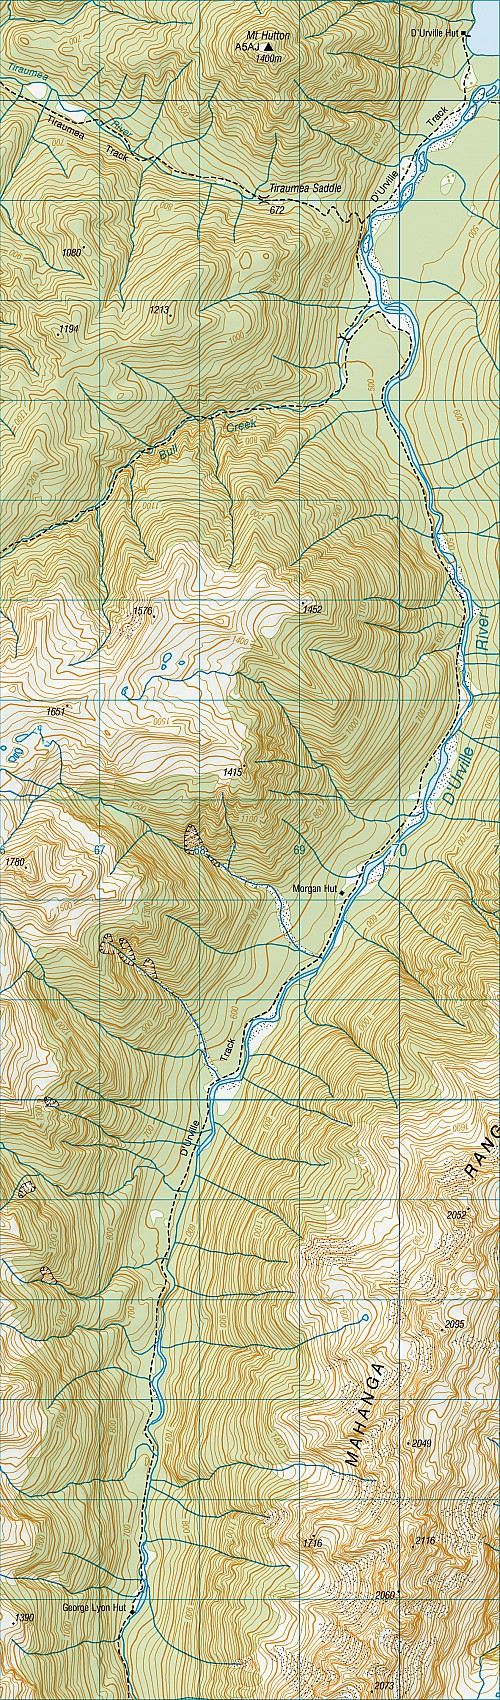 map day 5.jpeg: 1182x4018, 1692k (2010 Jul 18 07:28)